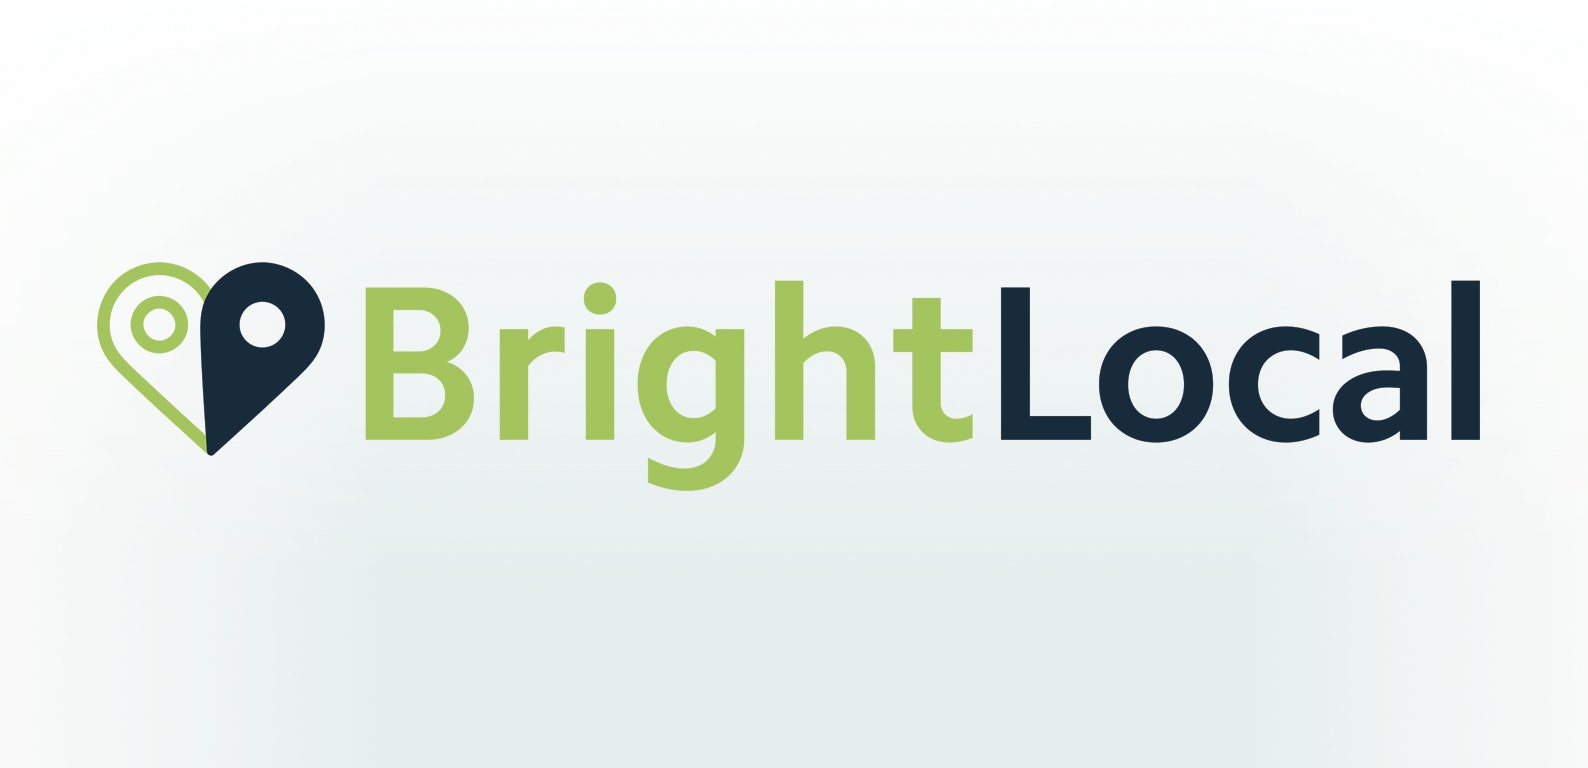 Welcome to the New BrightLocal.com!